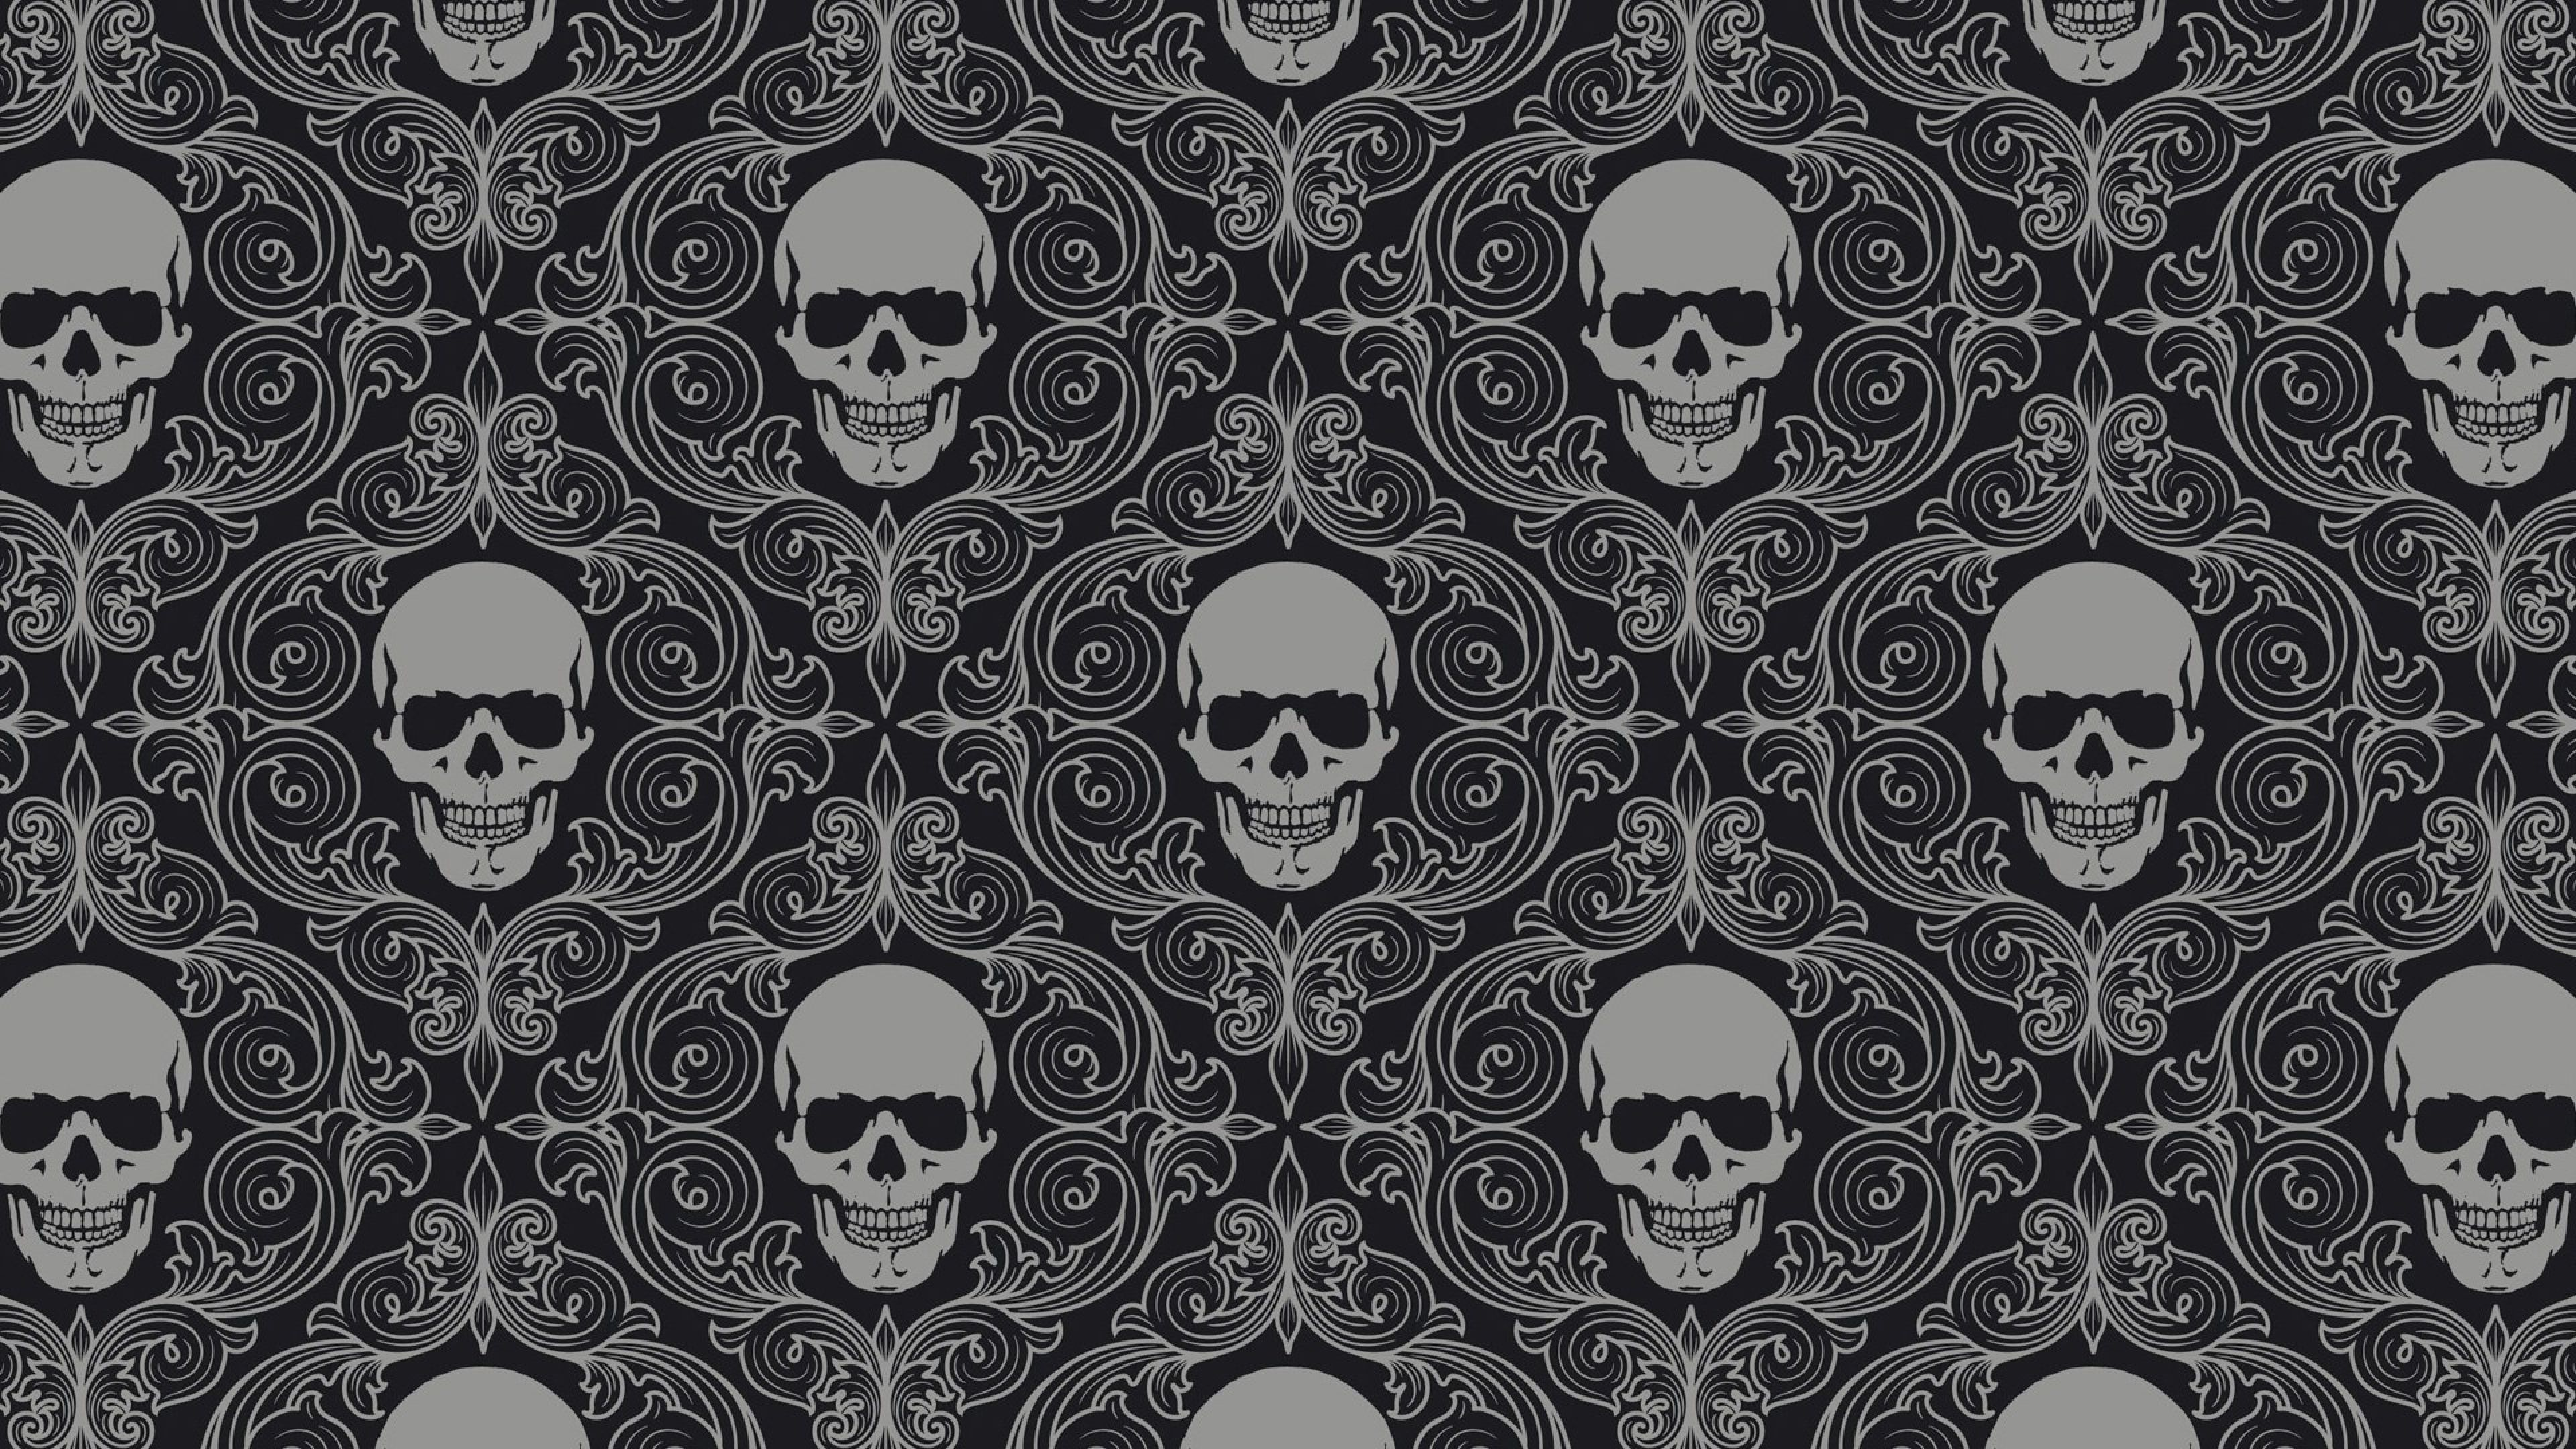 Download Skull Wallpaper High Resolution For Free Wallpaper Monodomo Skull Wallpaper Art Wallpaper Pattern Wallpaper